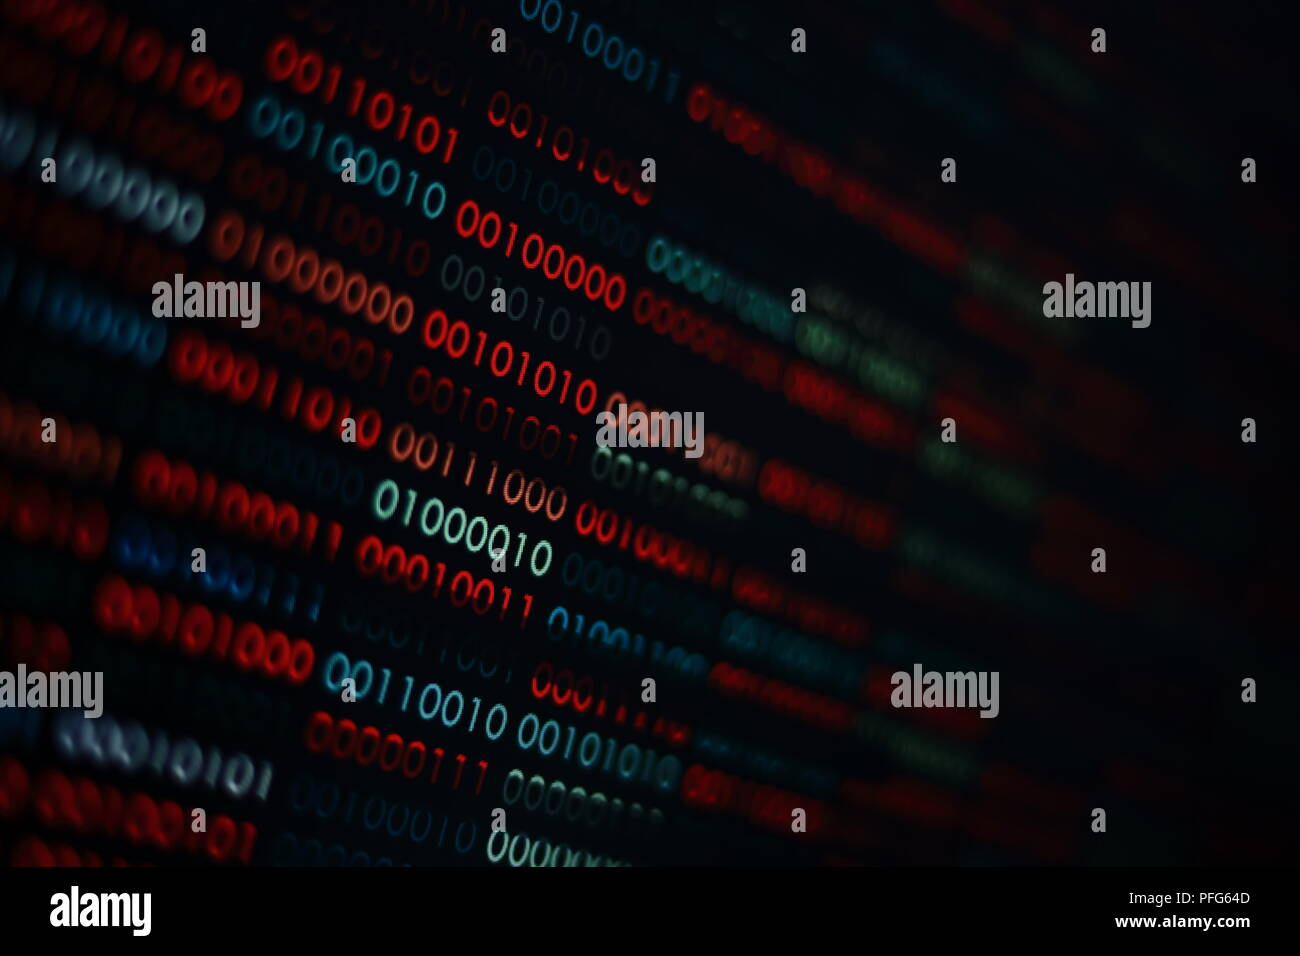 the right data. binary data background. focus on the white complete data amidst corrupted error red and blue binary bits. information codding problem Stock Photo